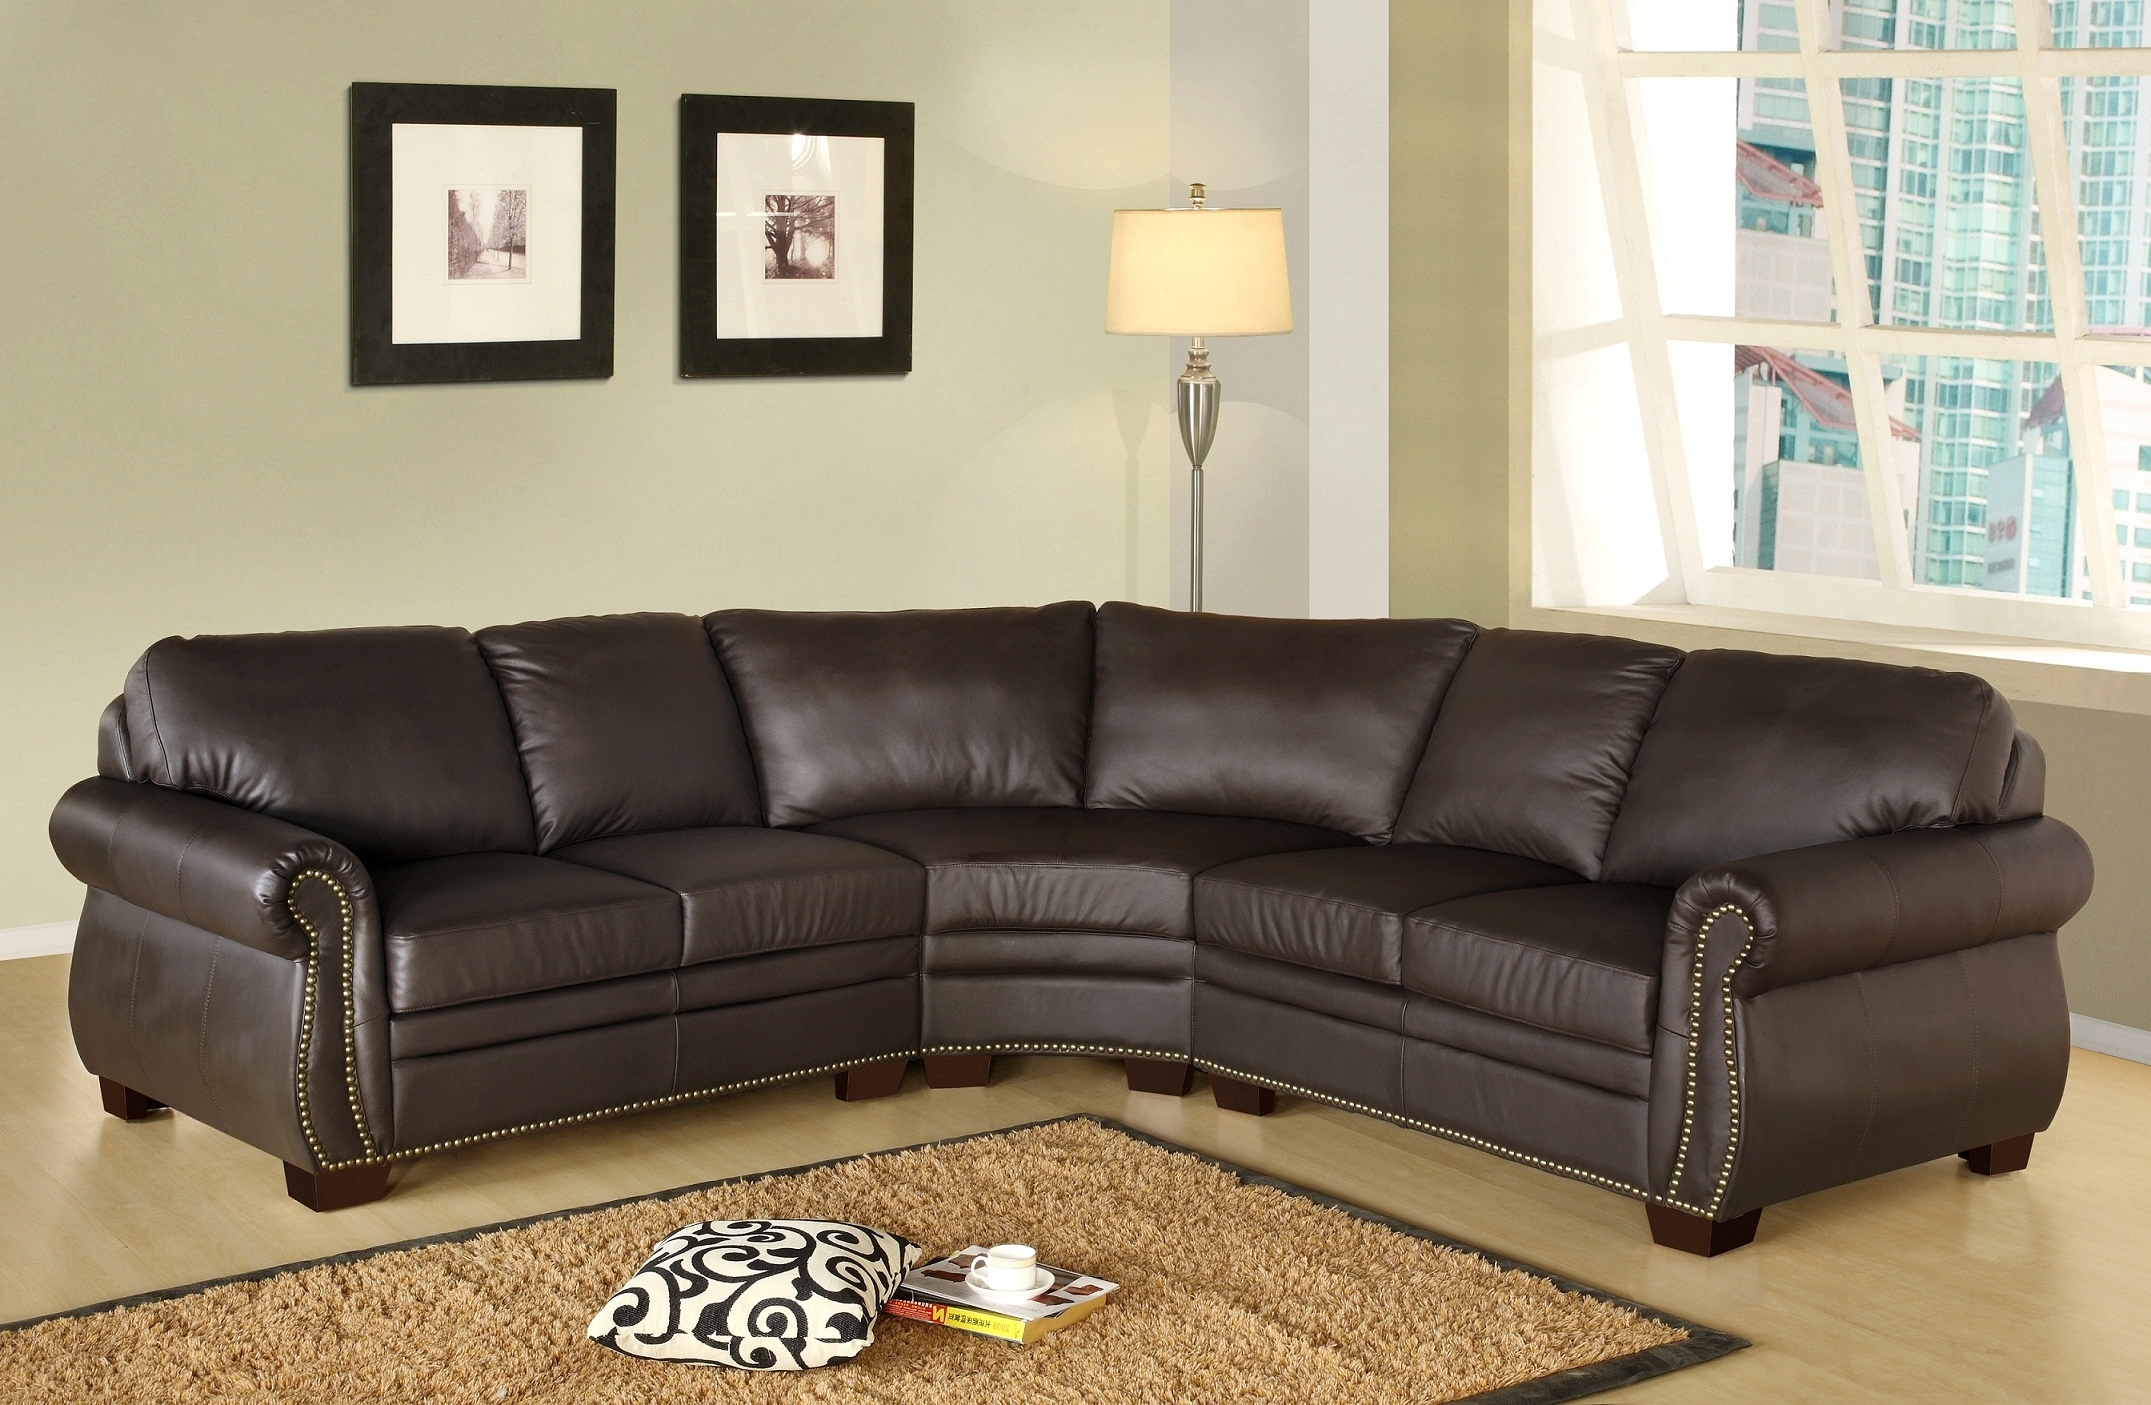 2019 Overstock Credit Card Sectional Couch Ikea Wayfair Coupon Ethan For Abbyson Sectional Sofas (View 1 of 20)